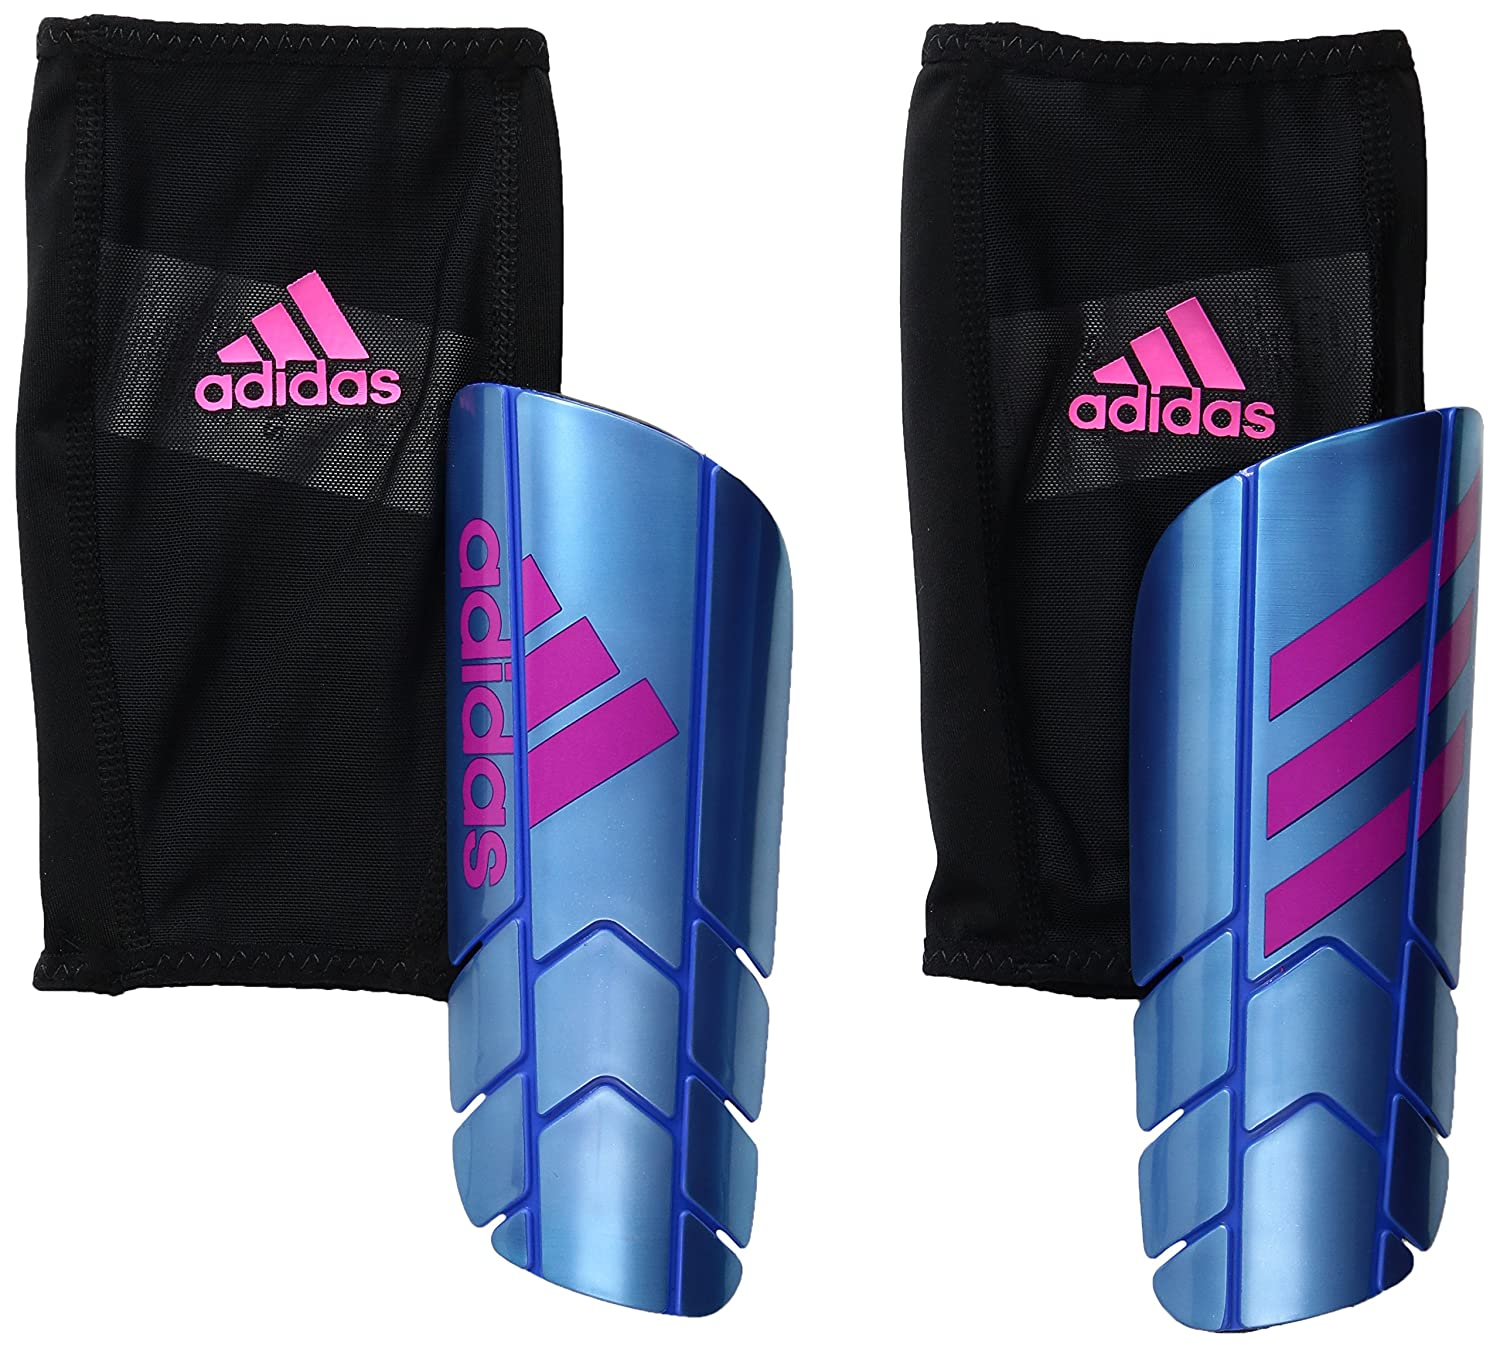 adidasゴーストプロシンガードすねあて B01GK9HBZG X-Large|Blue/Shock Pink/Black Blue/Shock Pink/Black X-Large